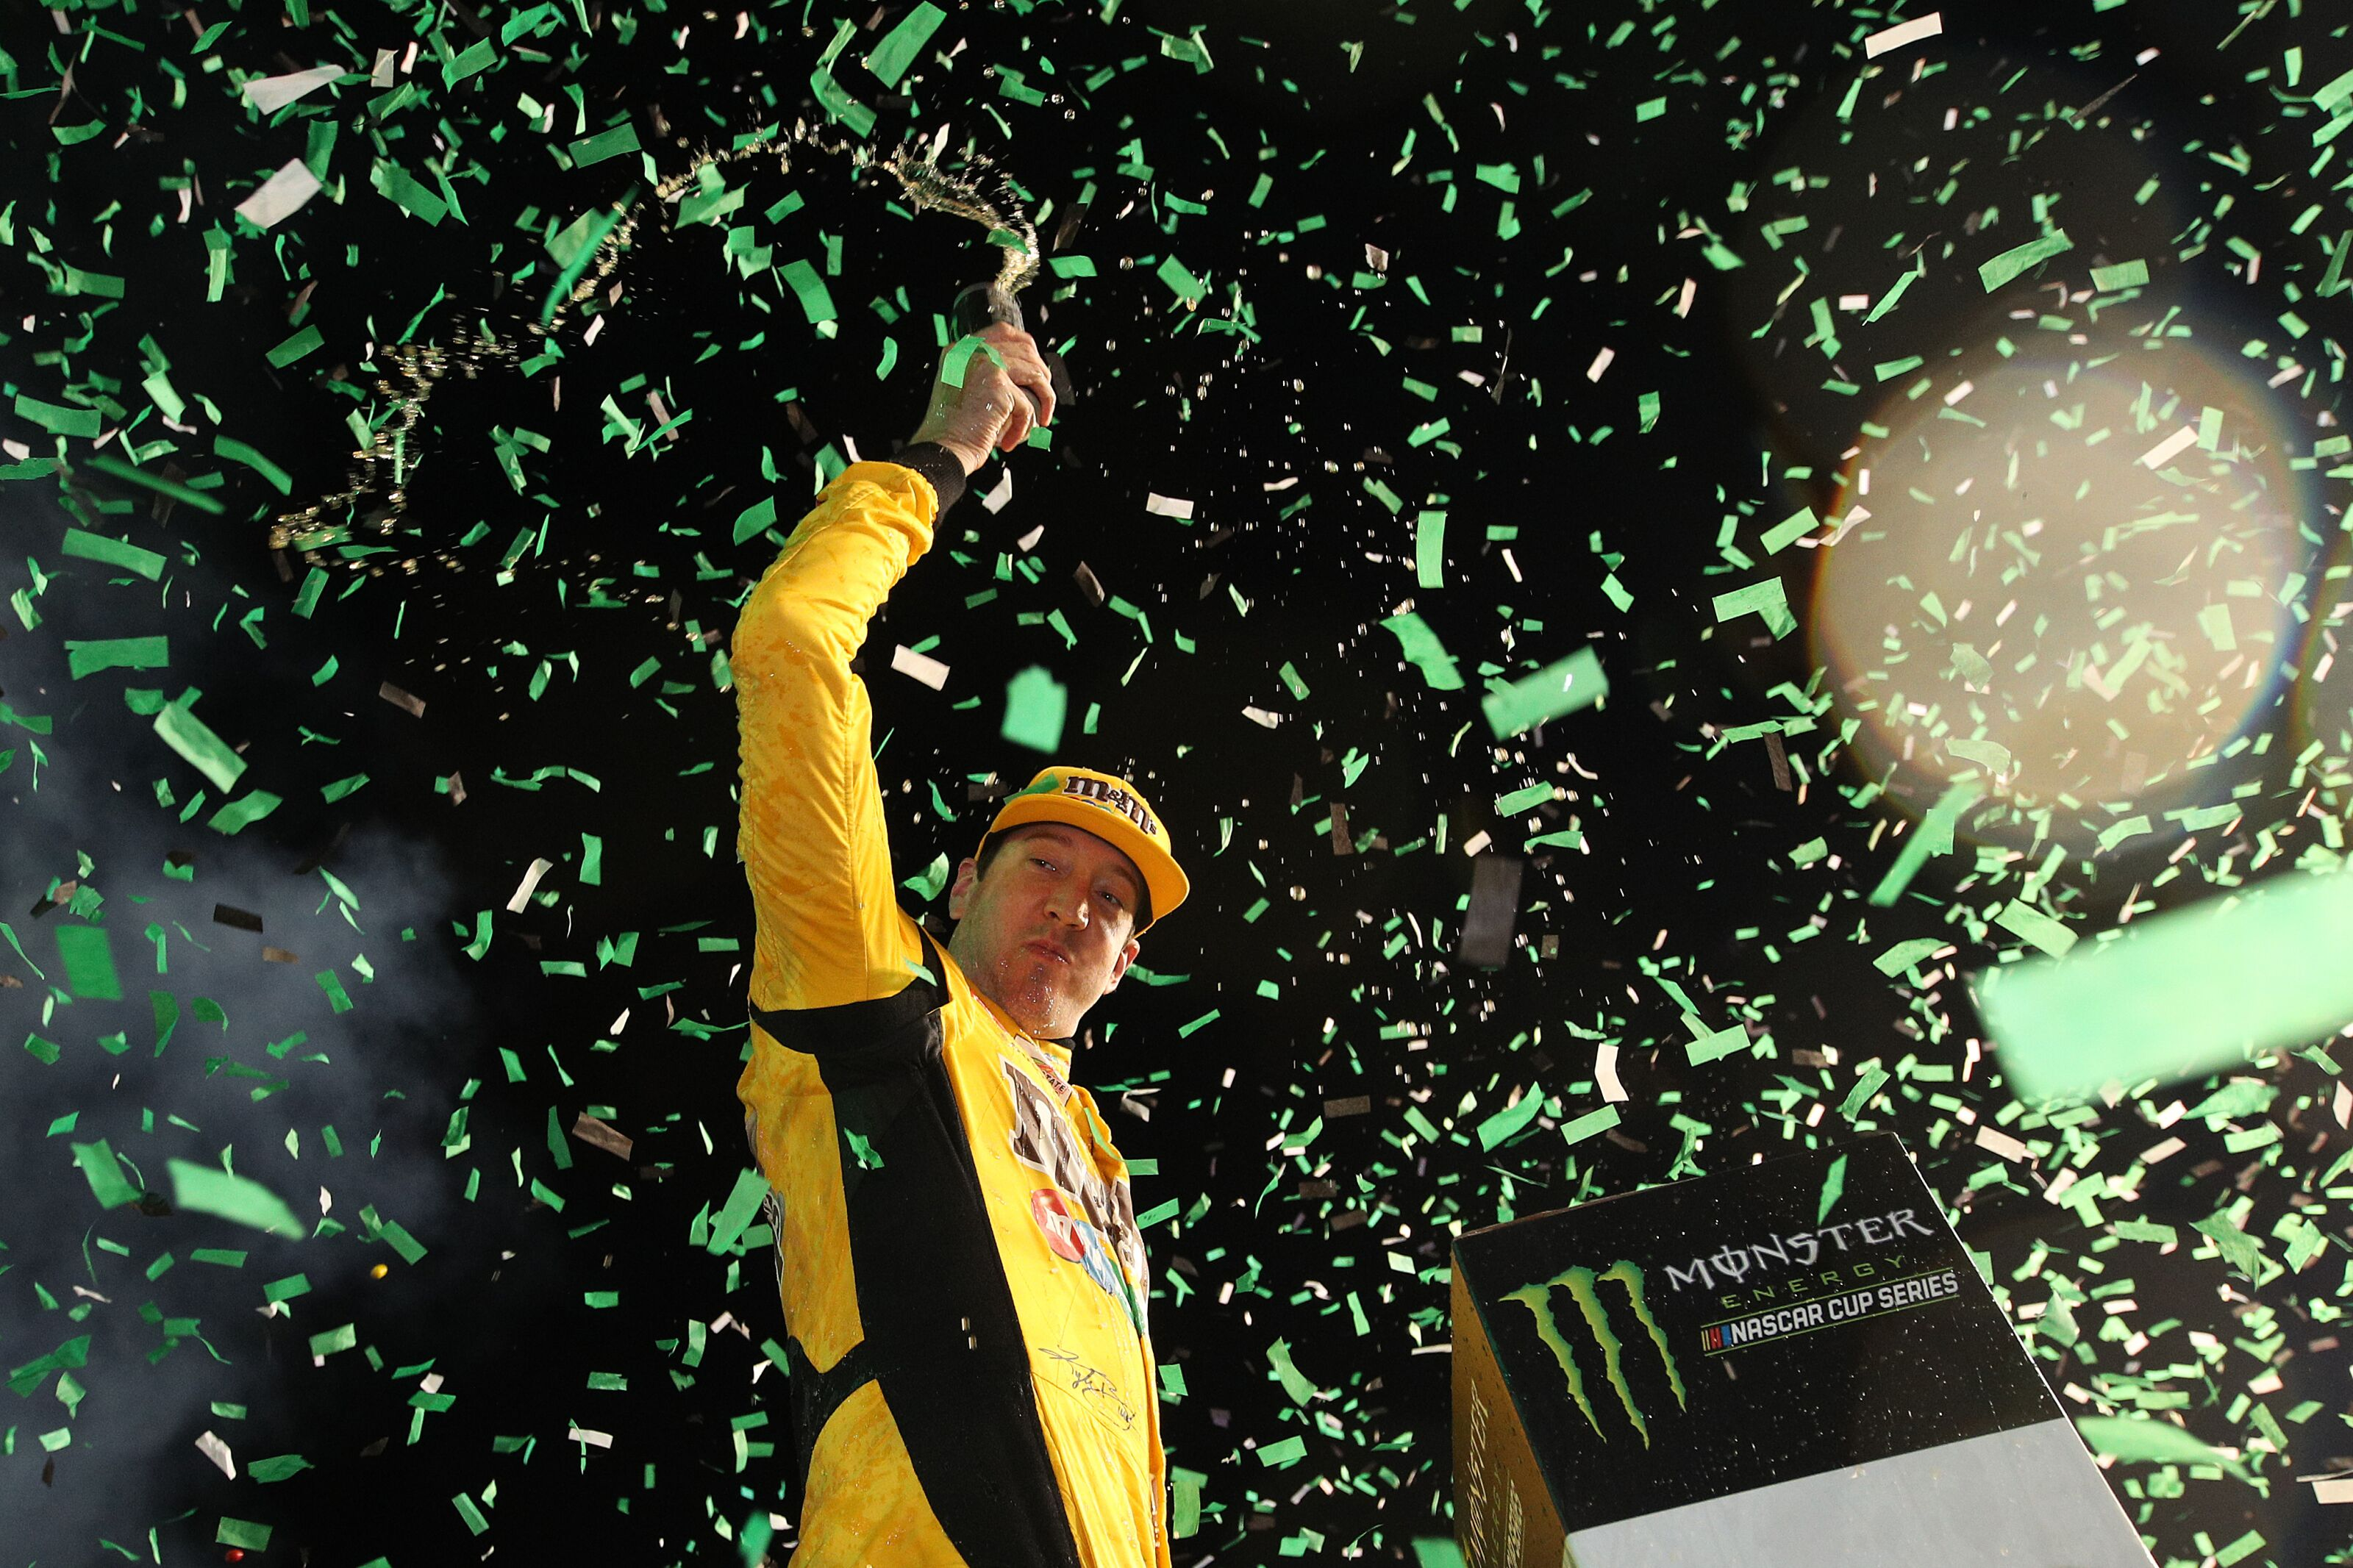 NASCAR: Joe Gibbs Racing break all-time record with Kyle Busch's title-clinching win